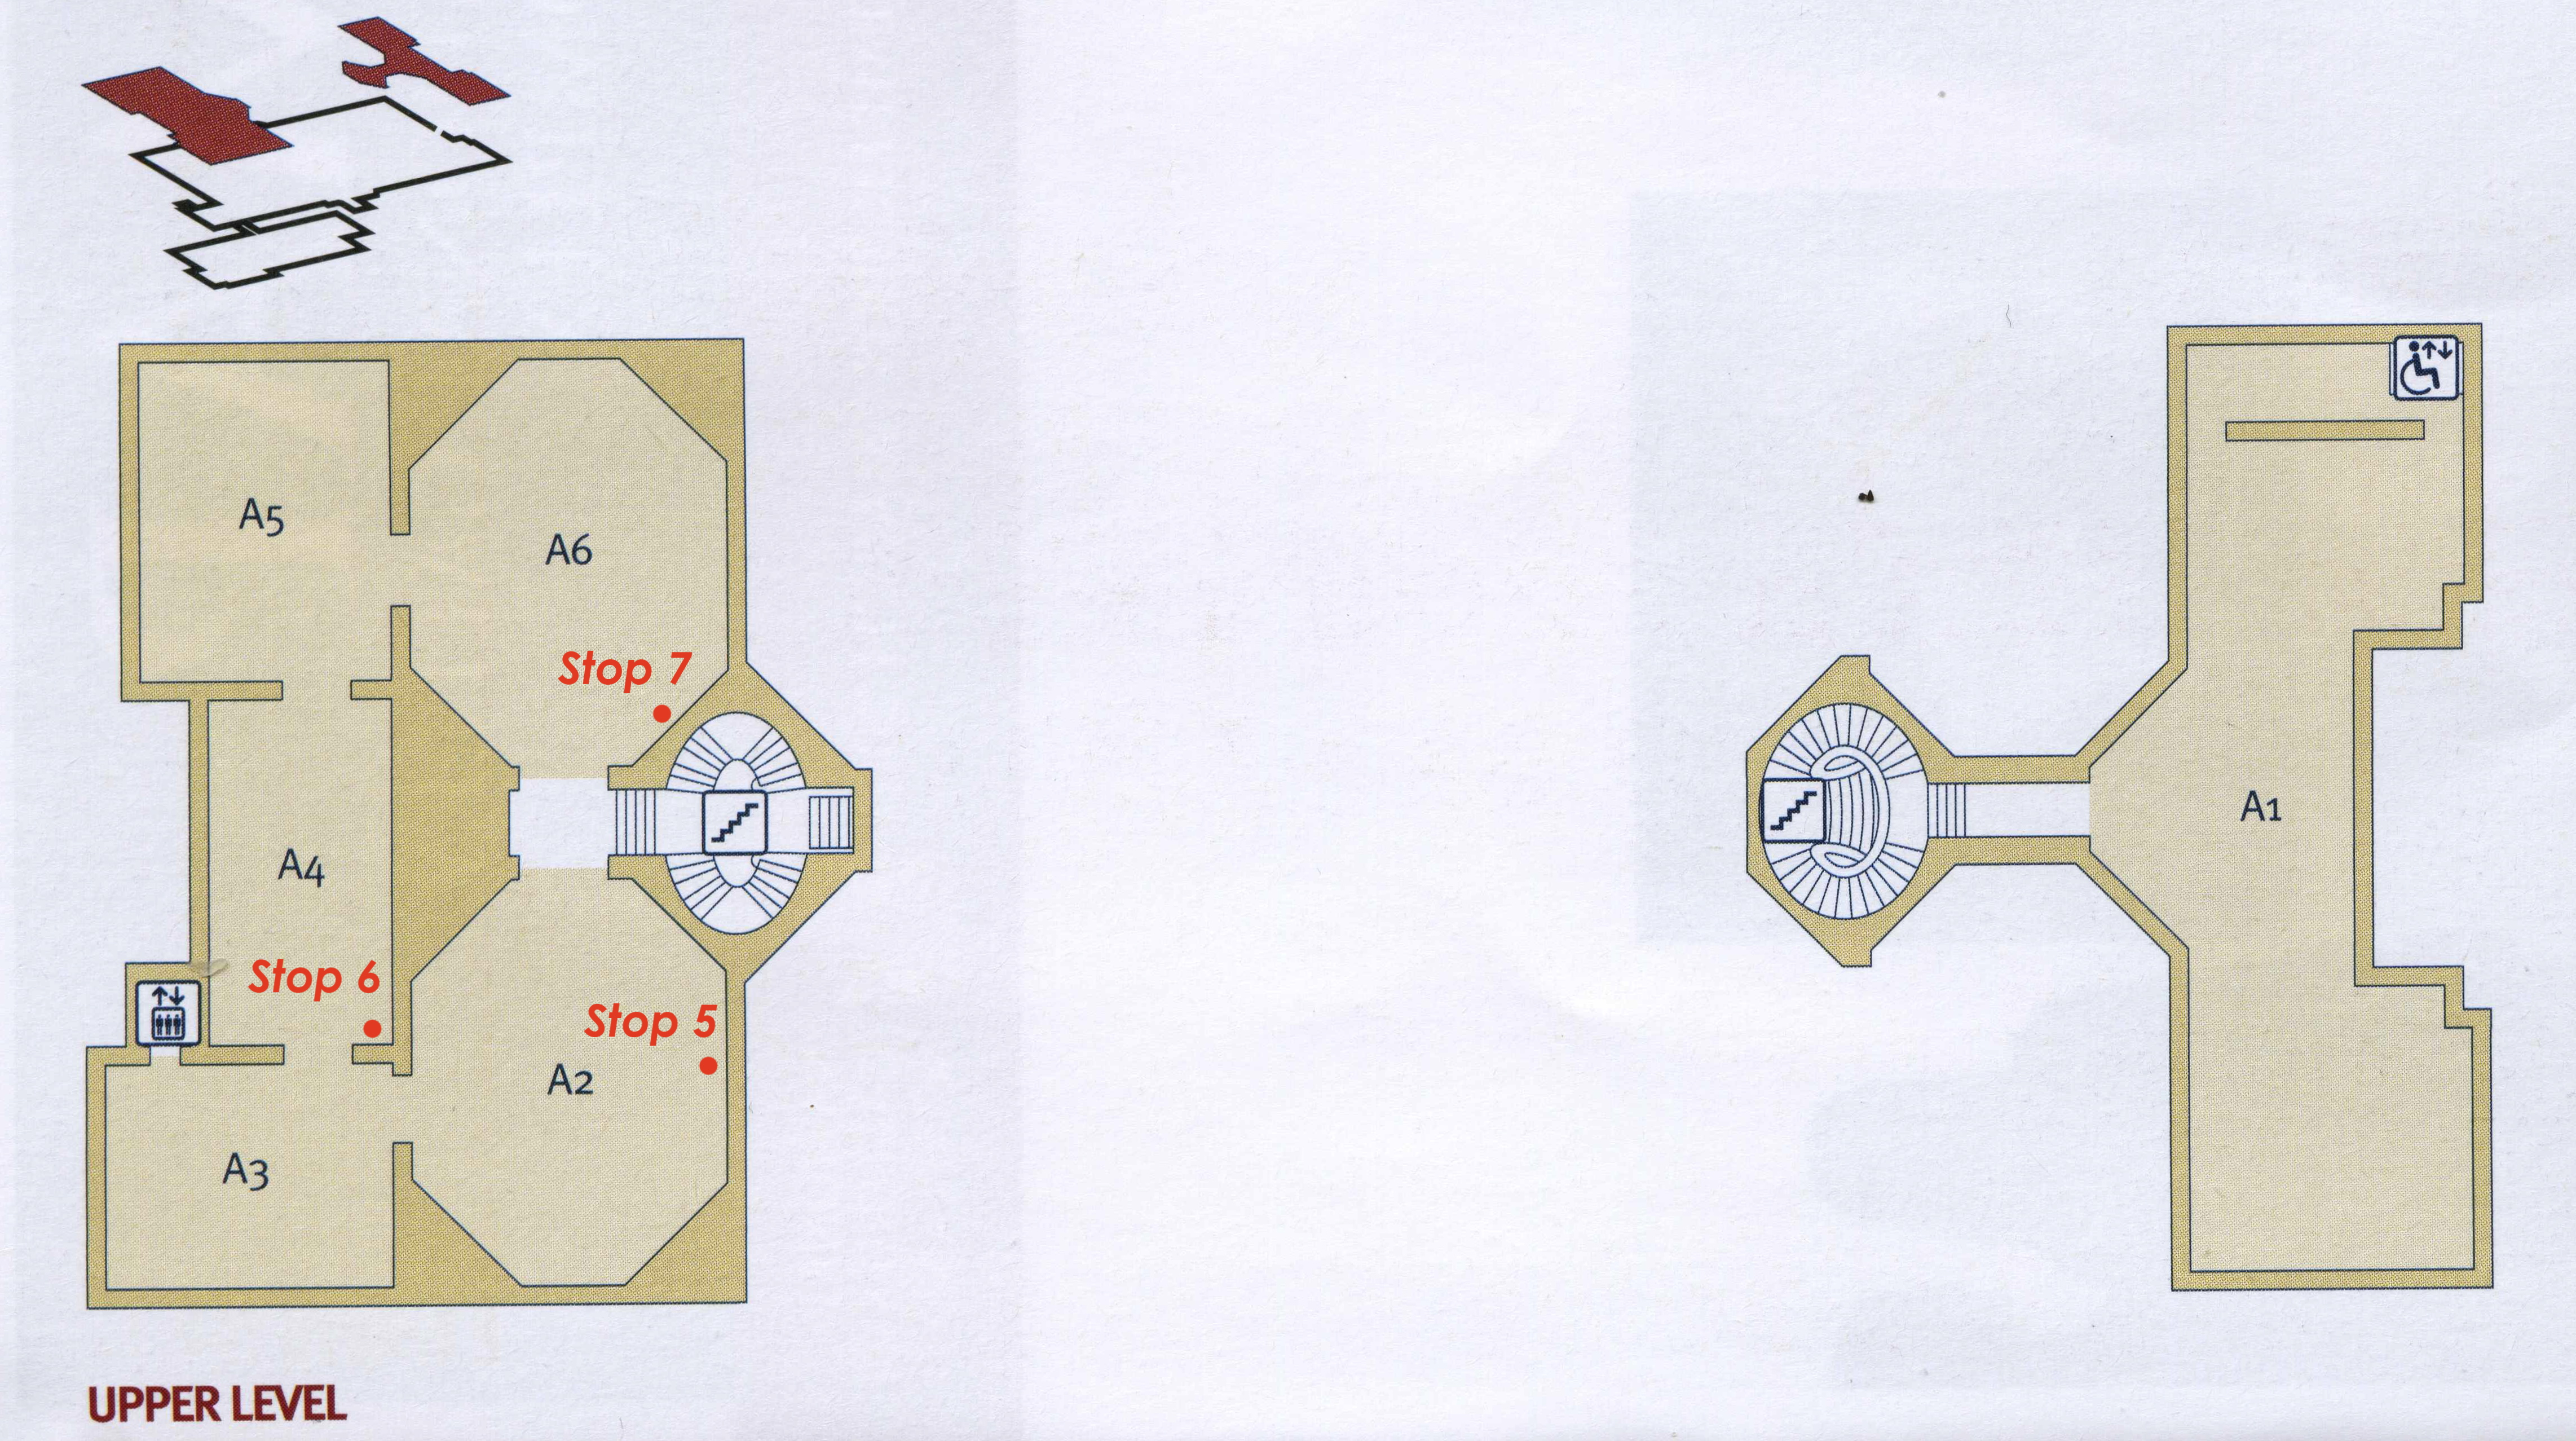 Upper floor plan with tour stopping points